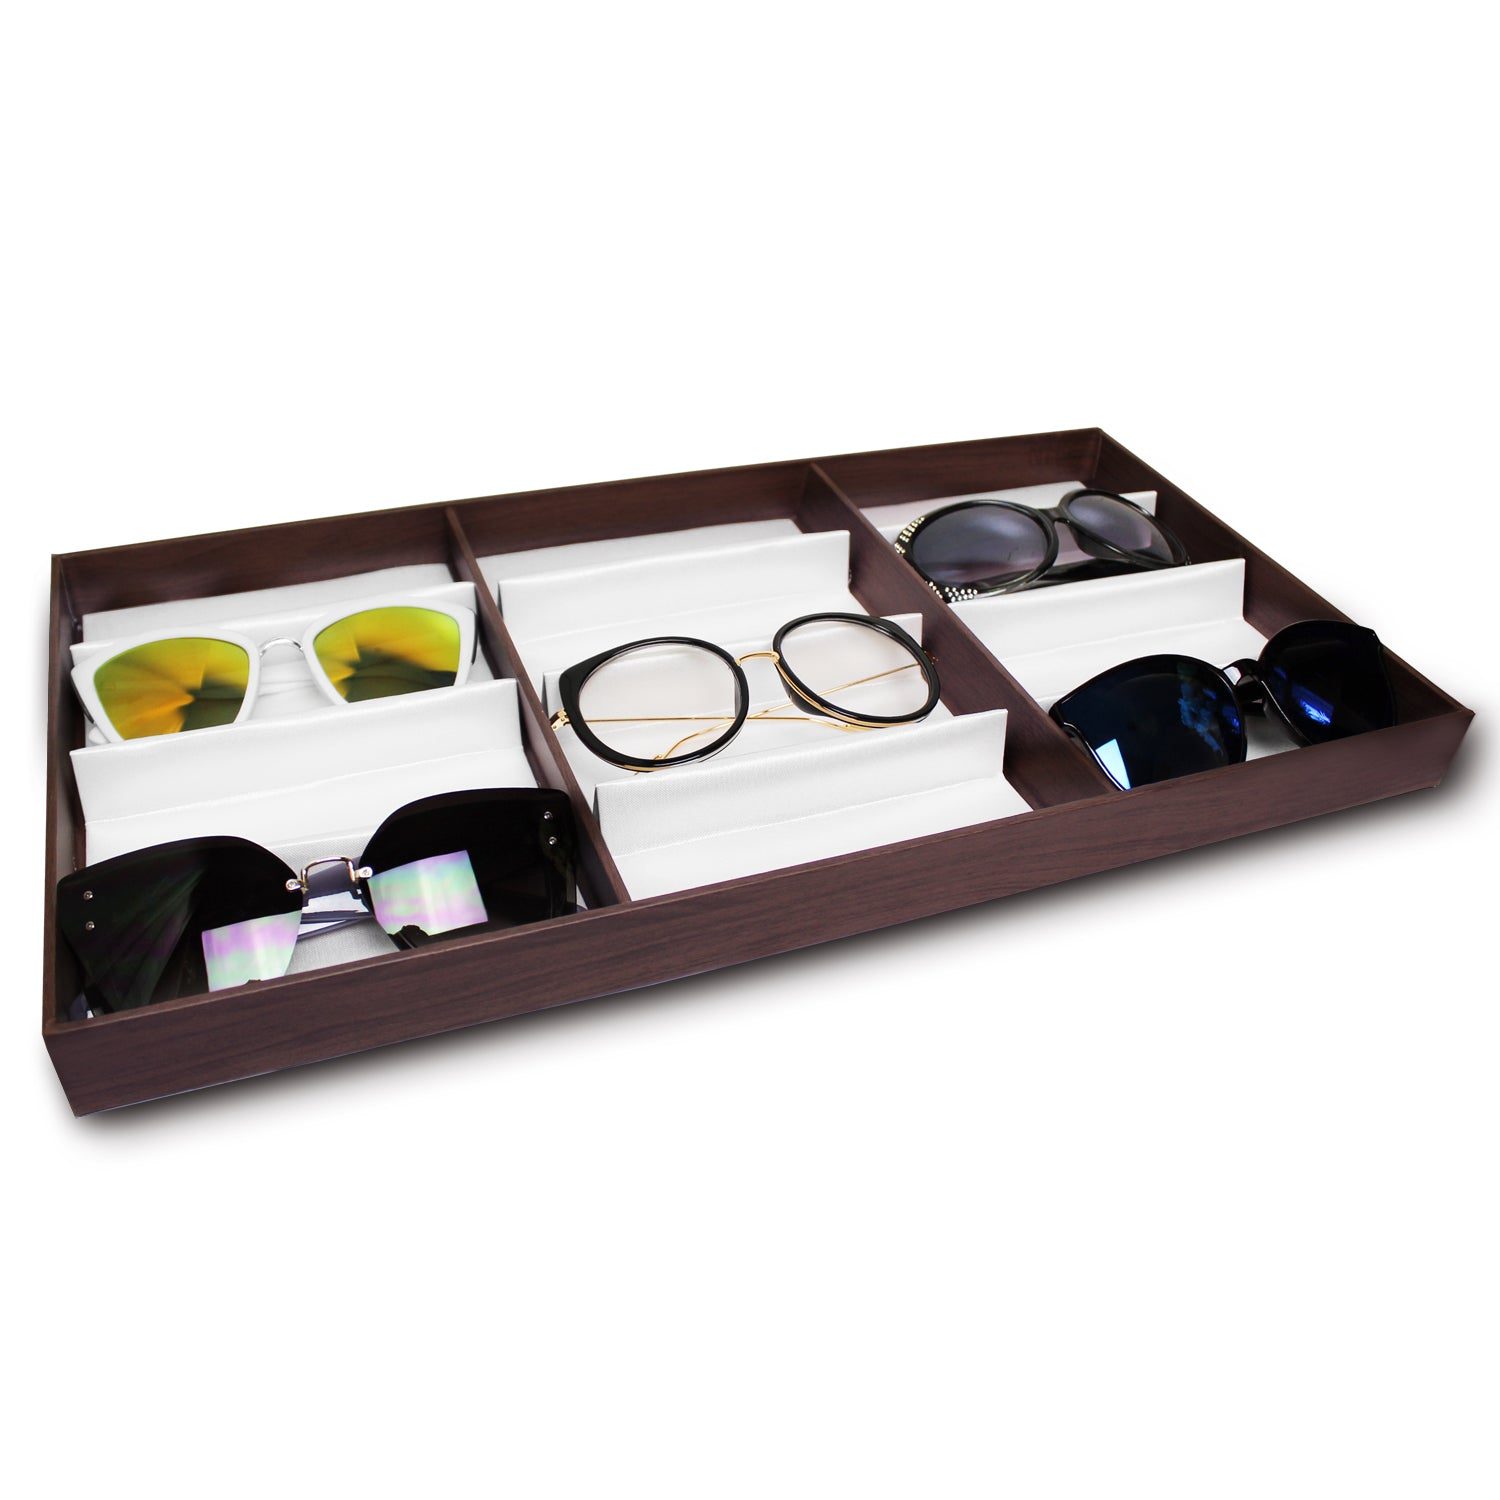 #TR-34BP-WDBR Eyewear Storage Organizer Box -12 Slots for Small or Medium Glasses Display Case